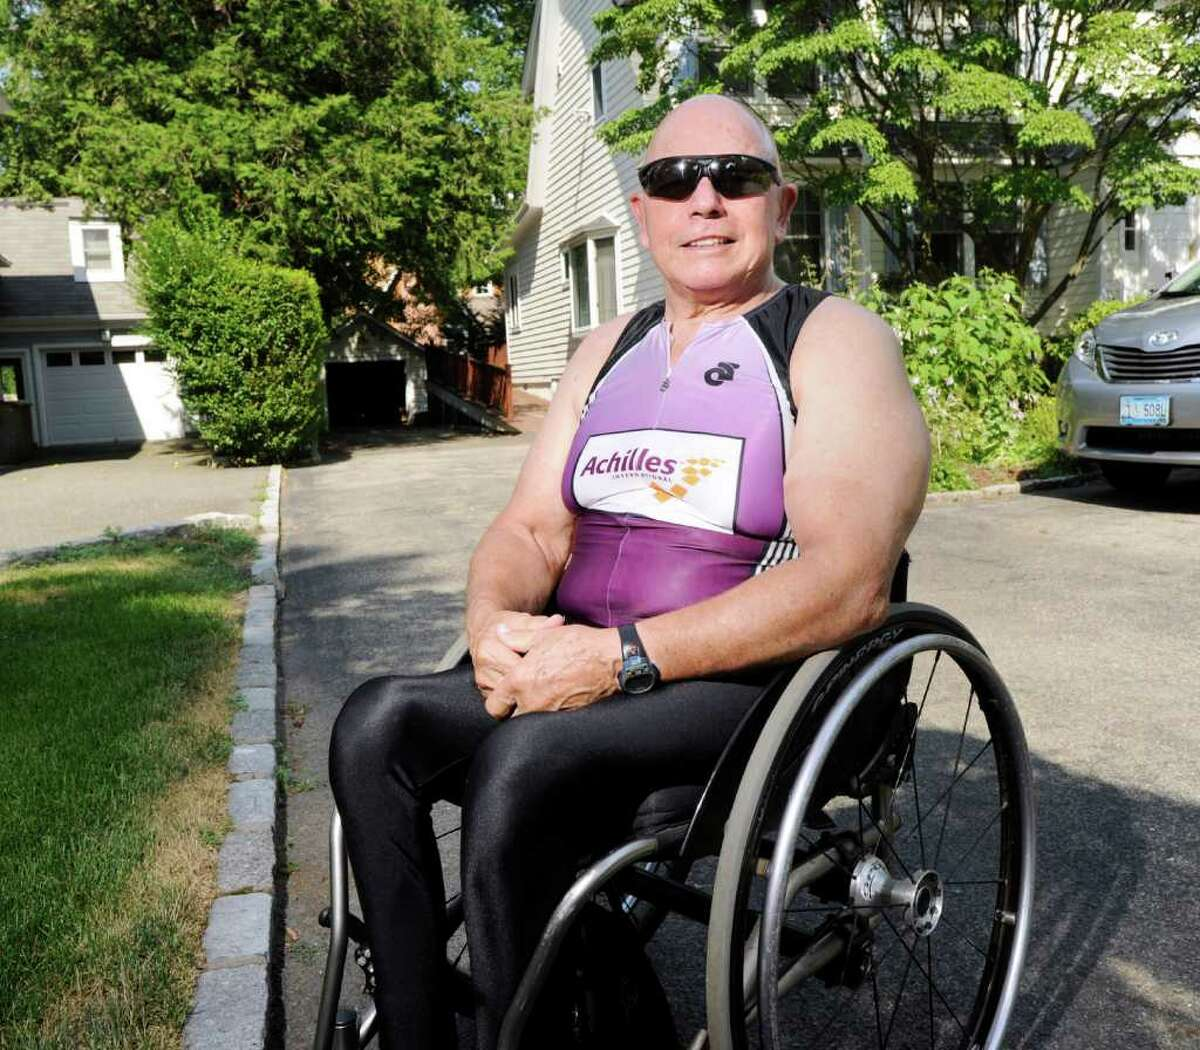 72-year old Joe Dowling, a wheelchair athlete, at his Old Greenwich home Friday afternoon, July 22, 2011. Dowling is in training for the 11th Nautica New York City Triathlon that takes place in August.